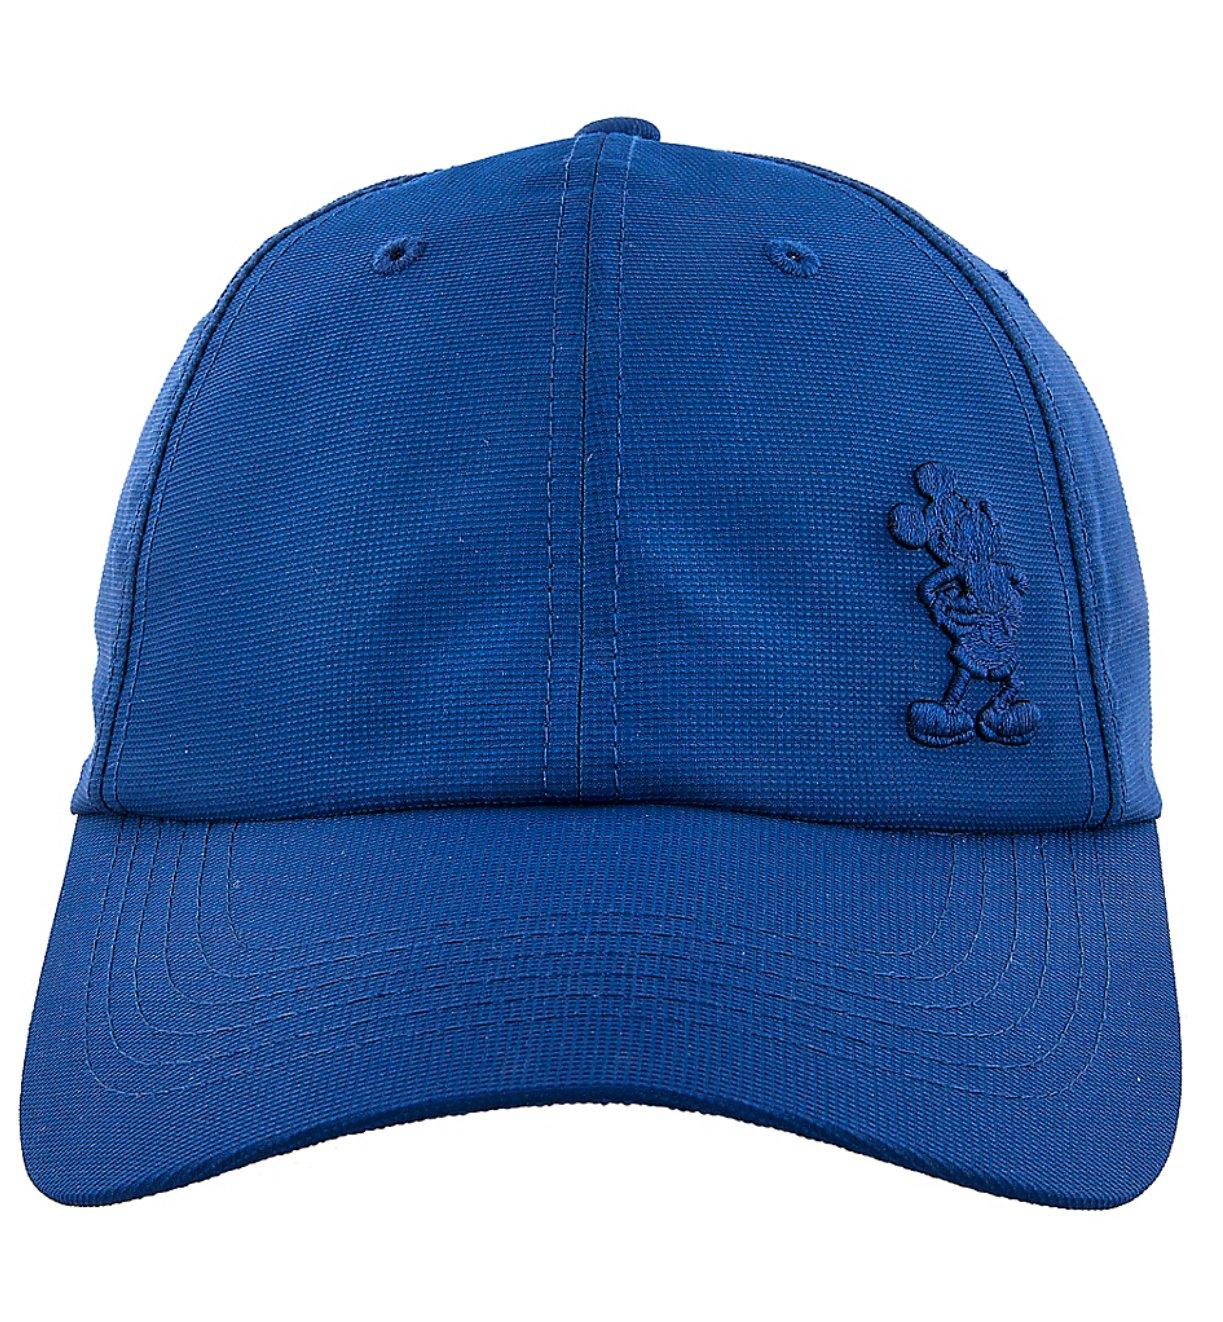 Disney Parks Mickey Mouse Blue Baseball Cap Hat